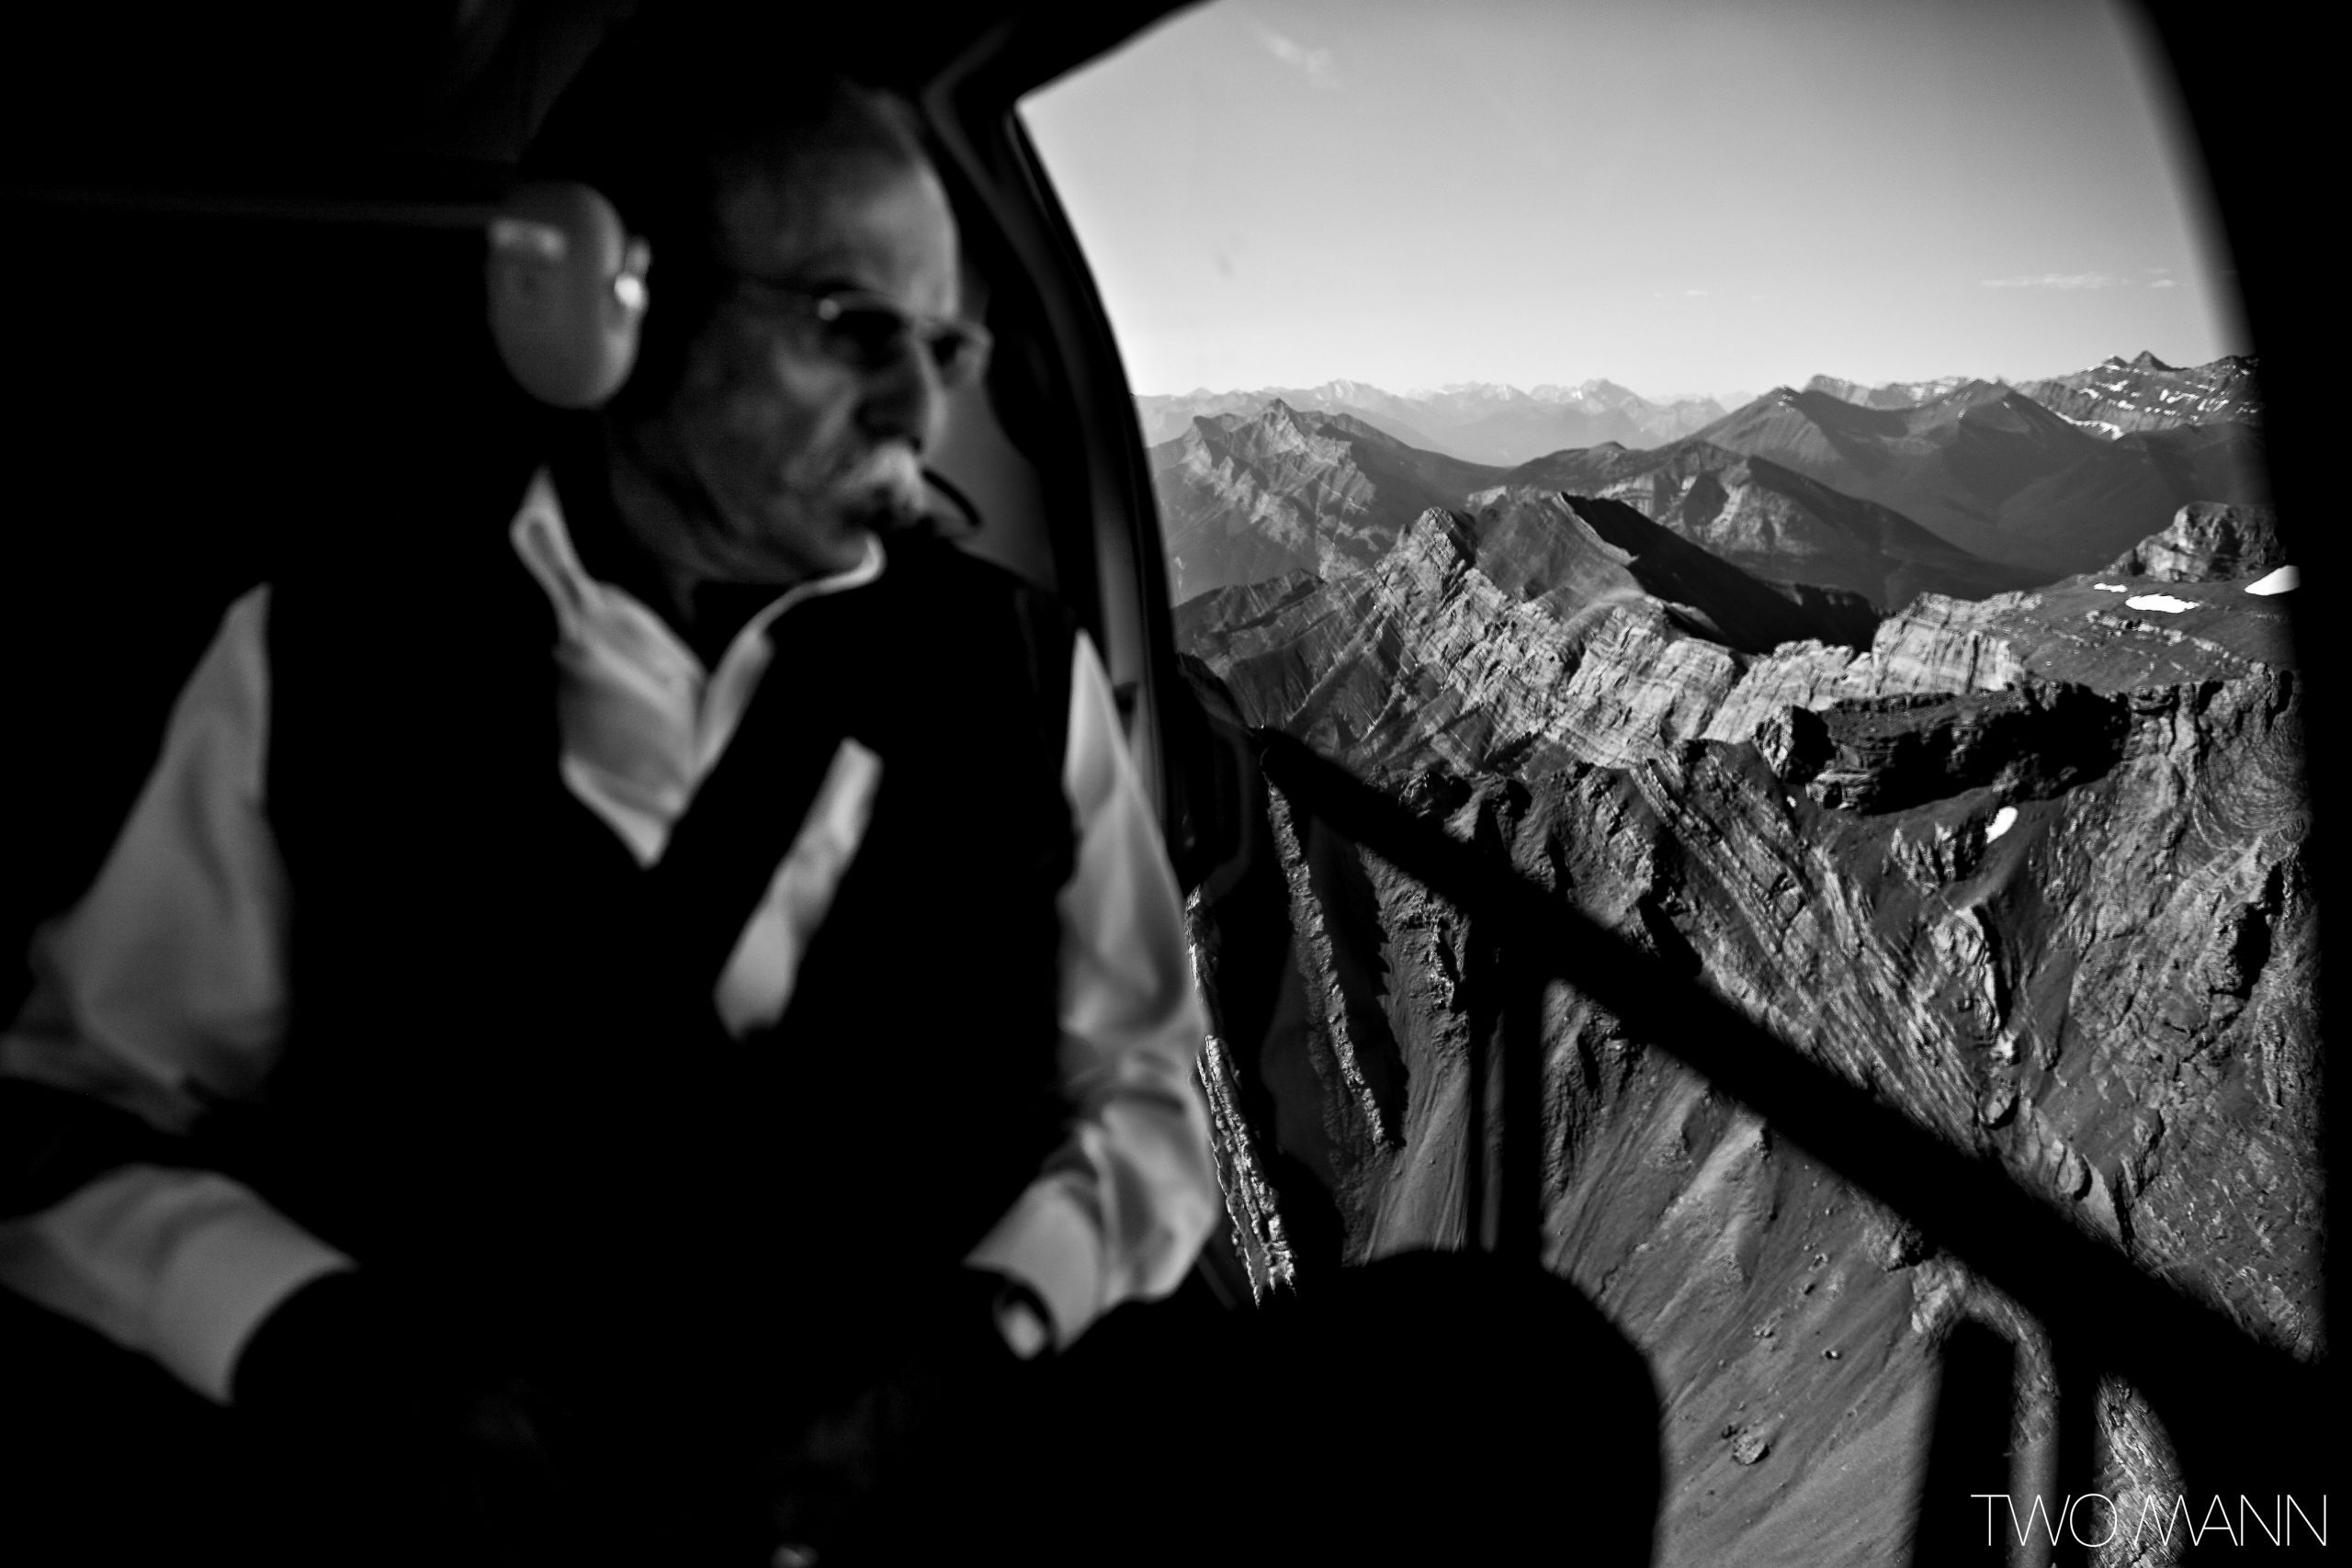 wedding commissioner looking out window of helicopter on way to heli-elopement ceremony in mountains